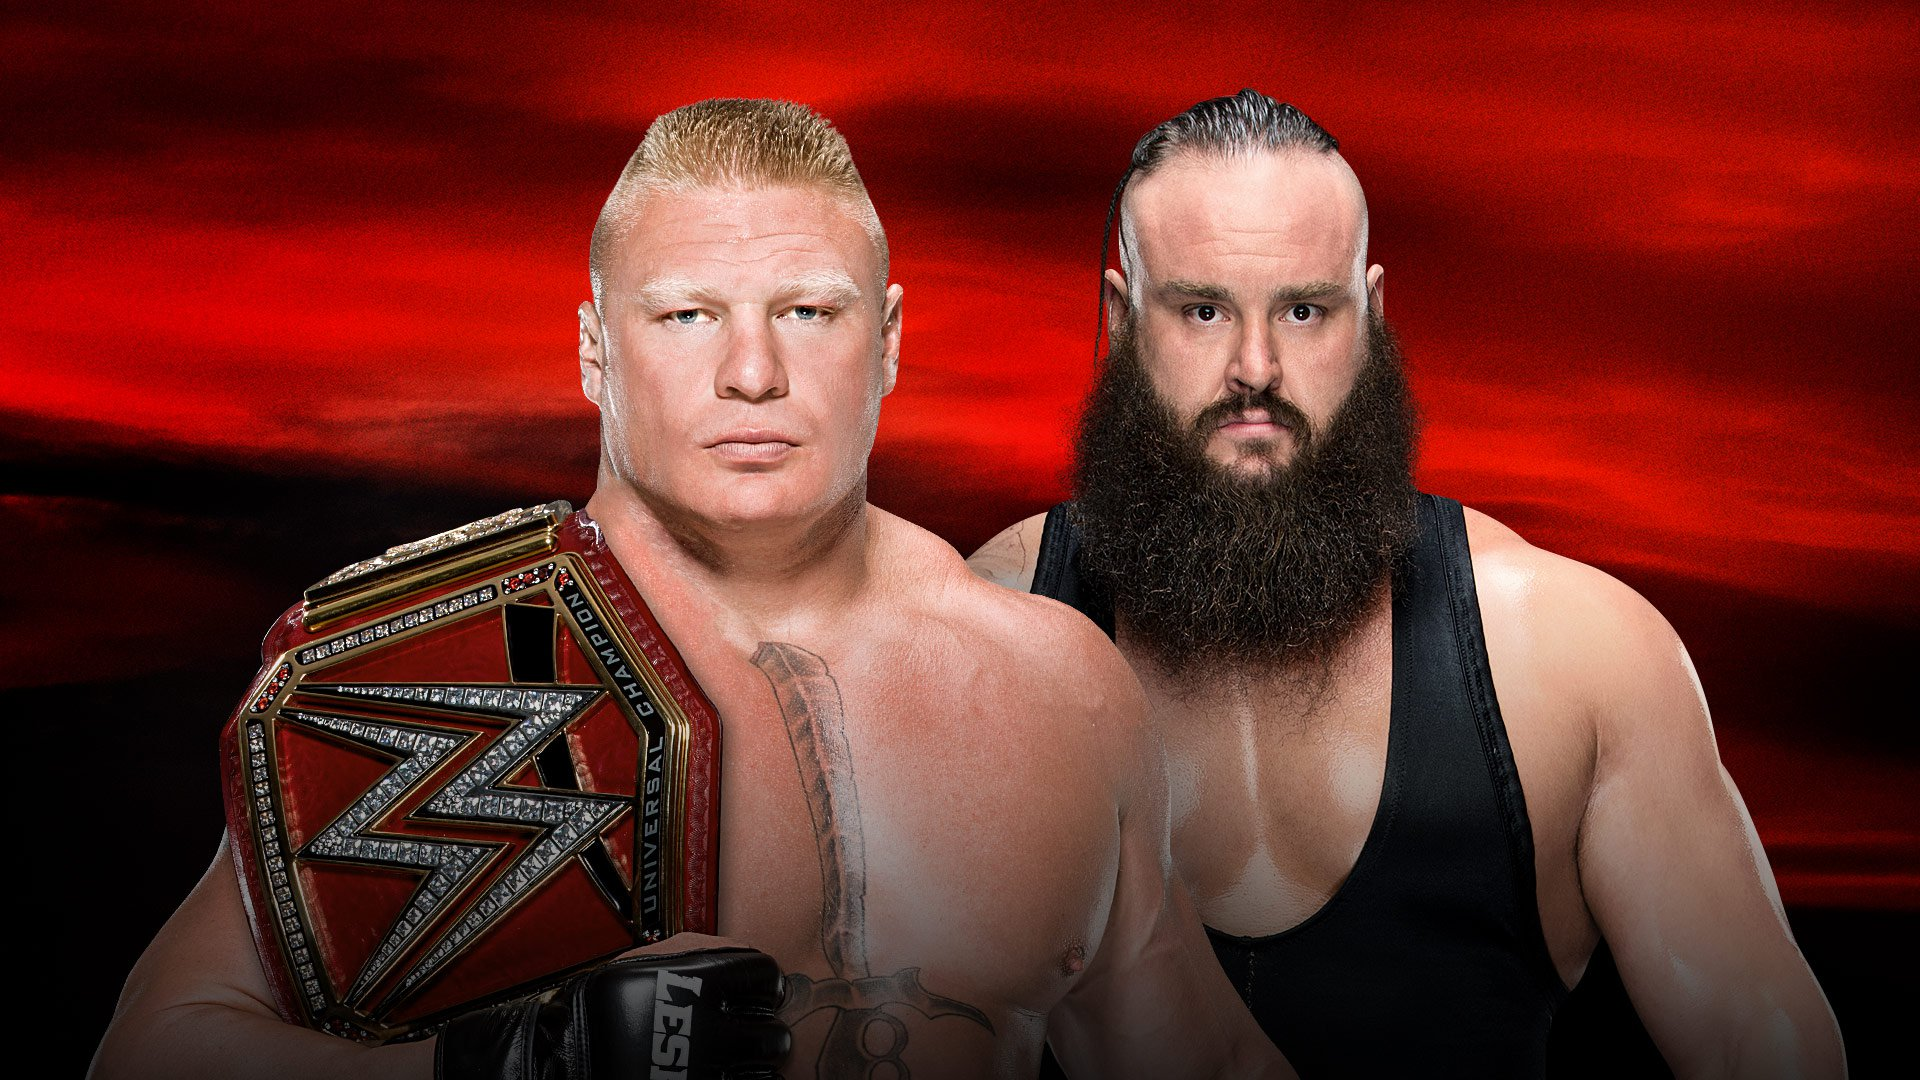 WWE No Mercy 2017: Brock Lesnar vs. Braun Strowman